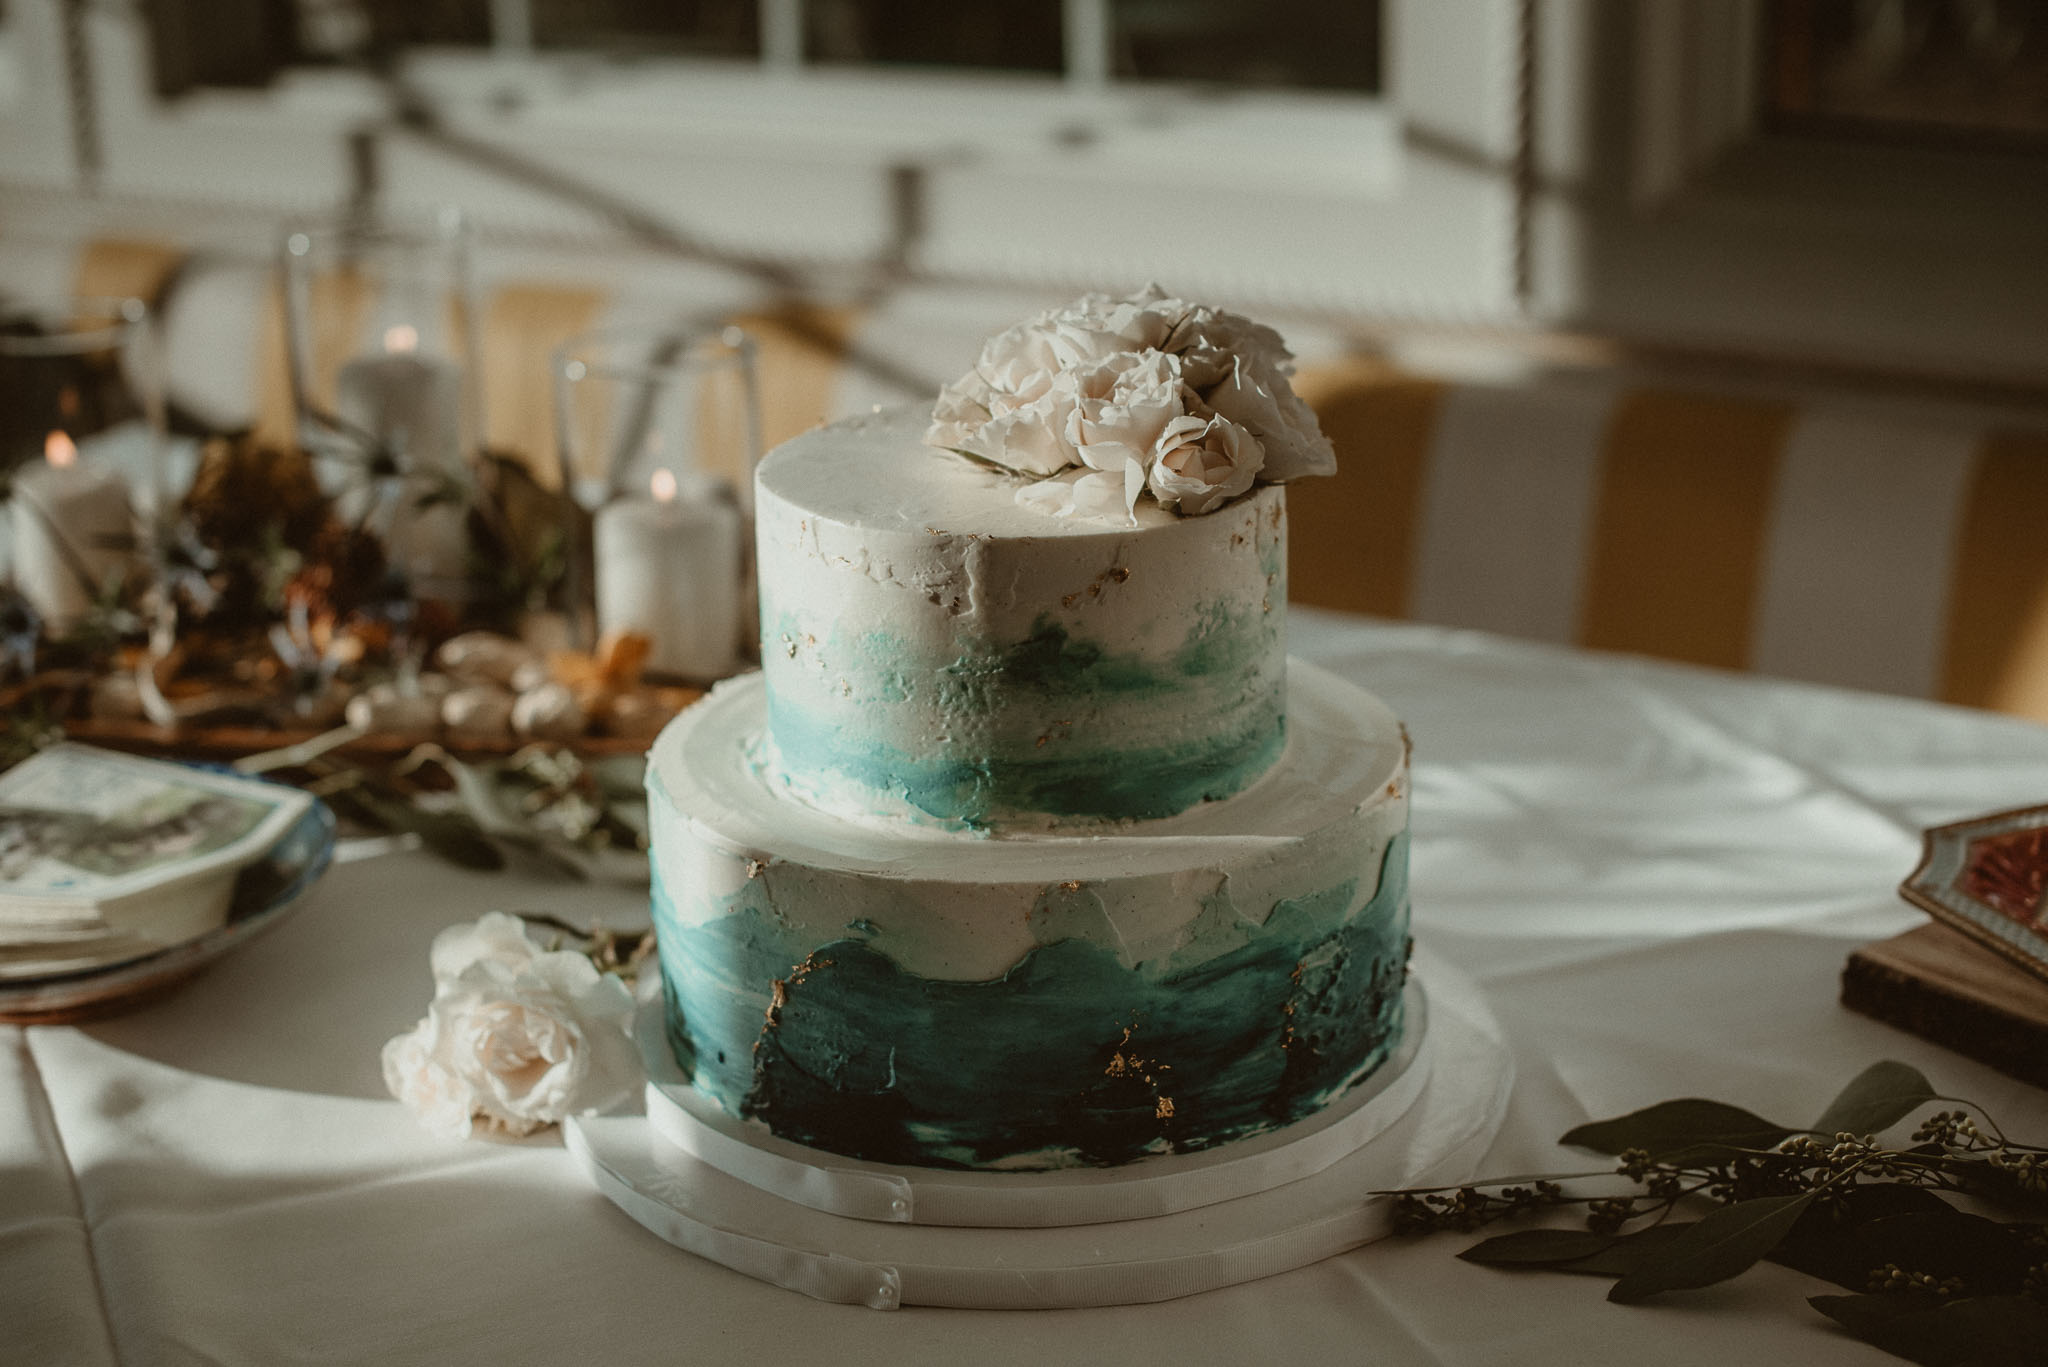 Small two tier wedding cake with fading Marine blue and flowers on top.